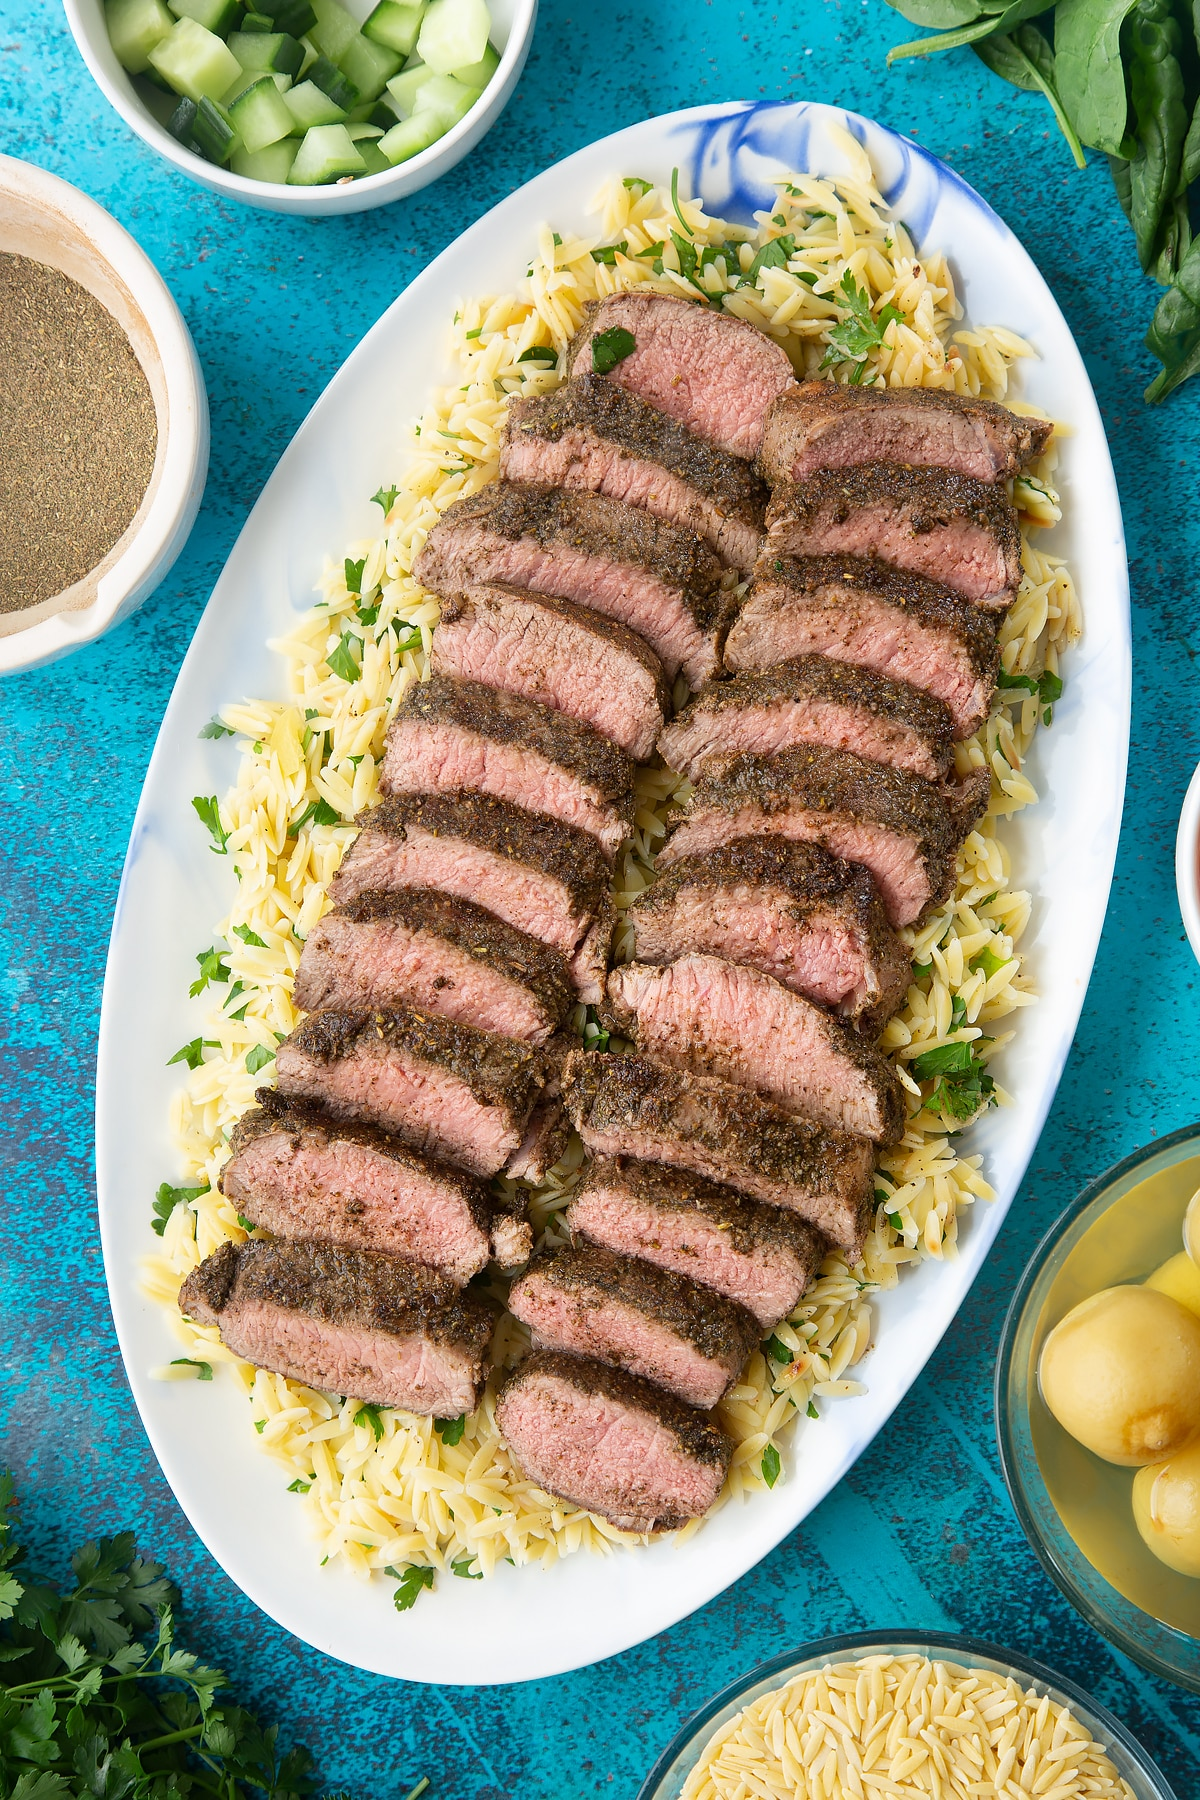 Lemony orzo spread on an oval platter, topped with slices of herby lamb.